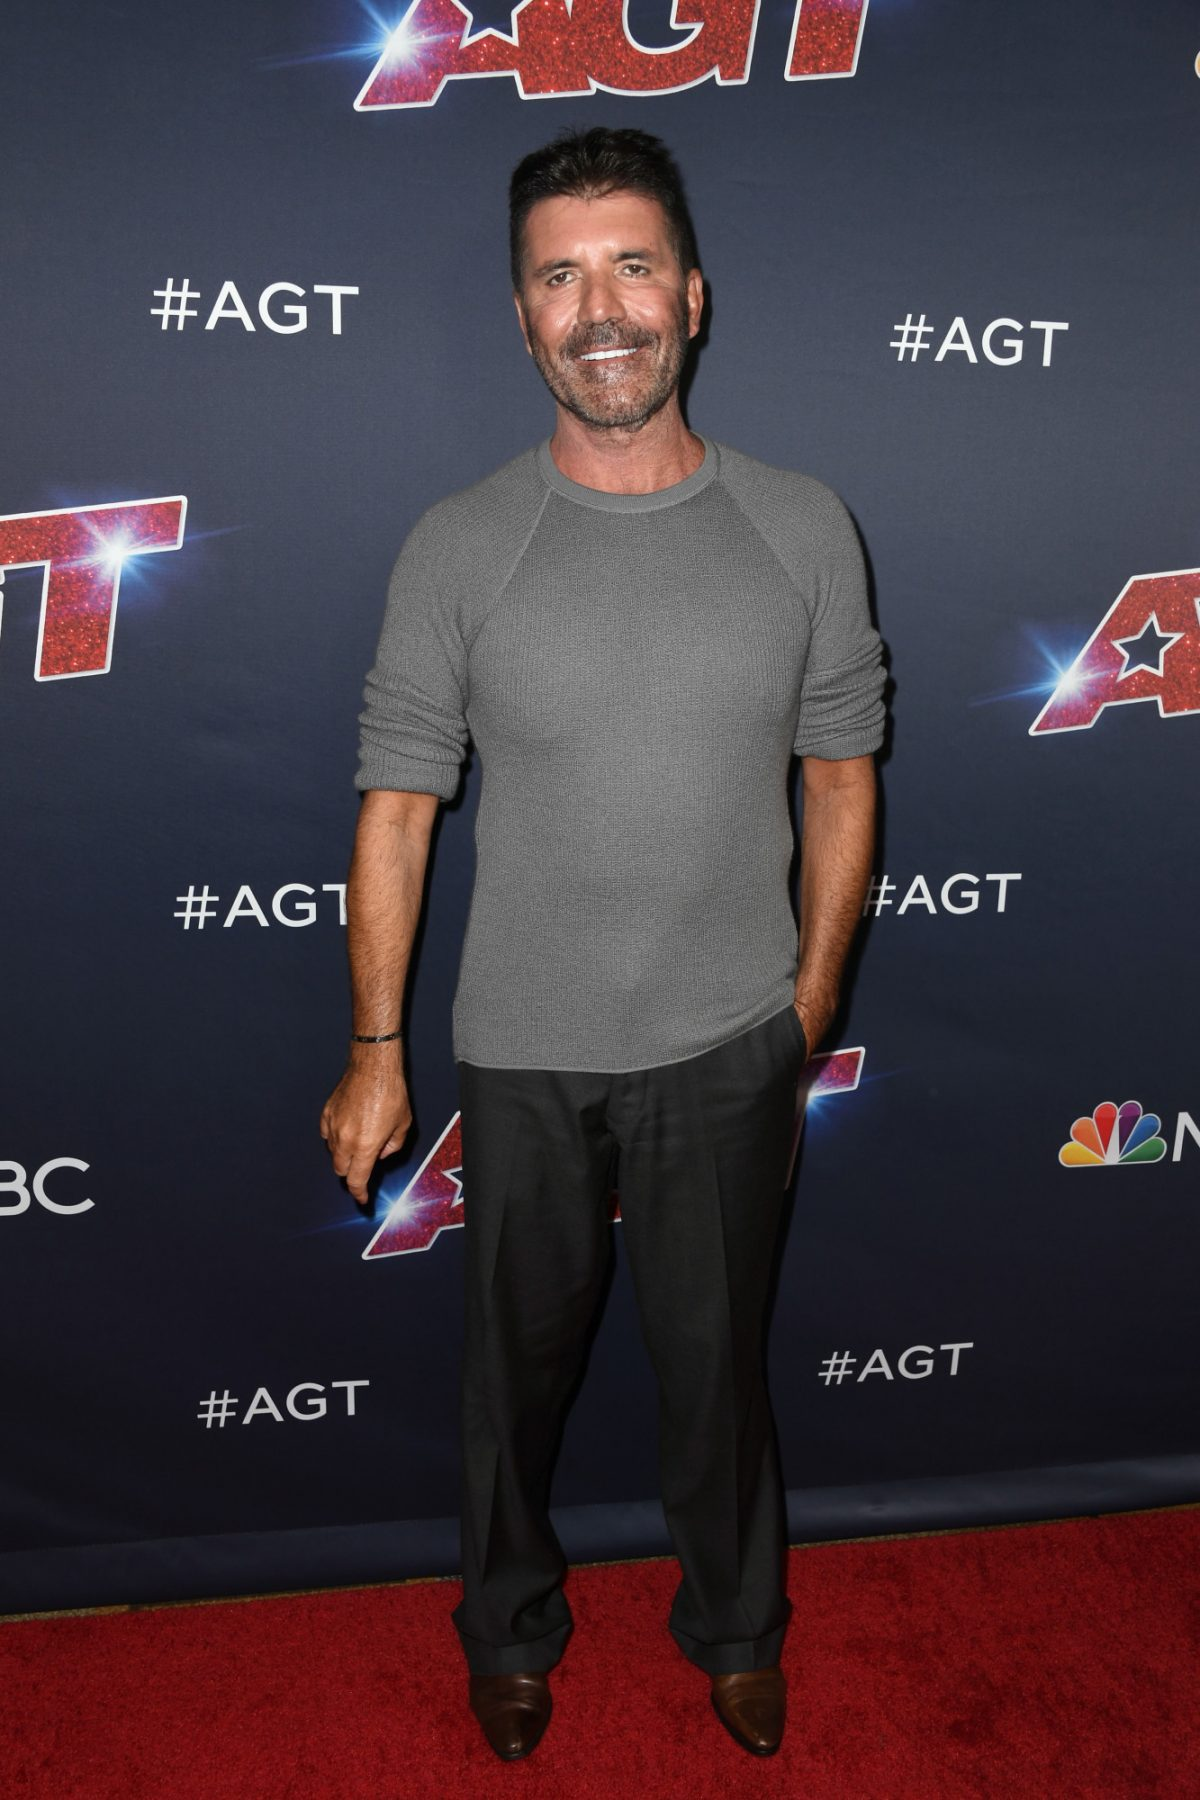 Simon Cowell attends AGT